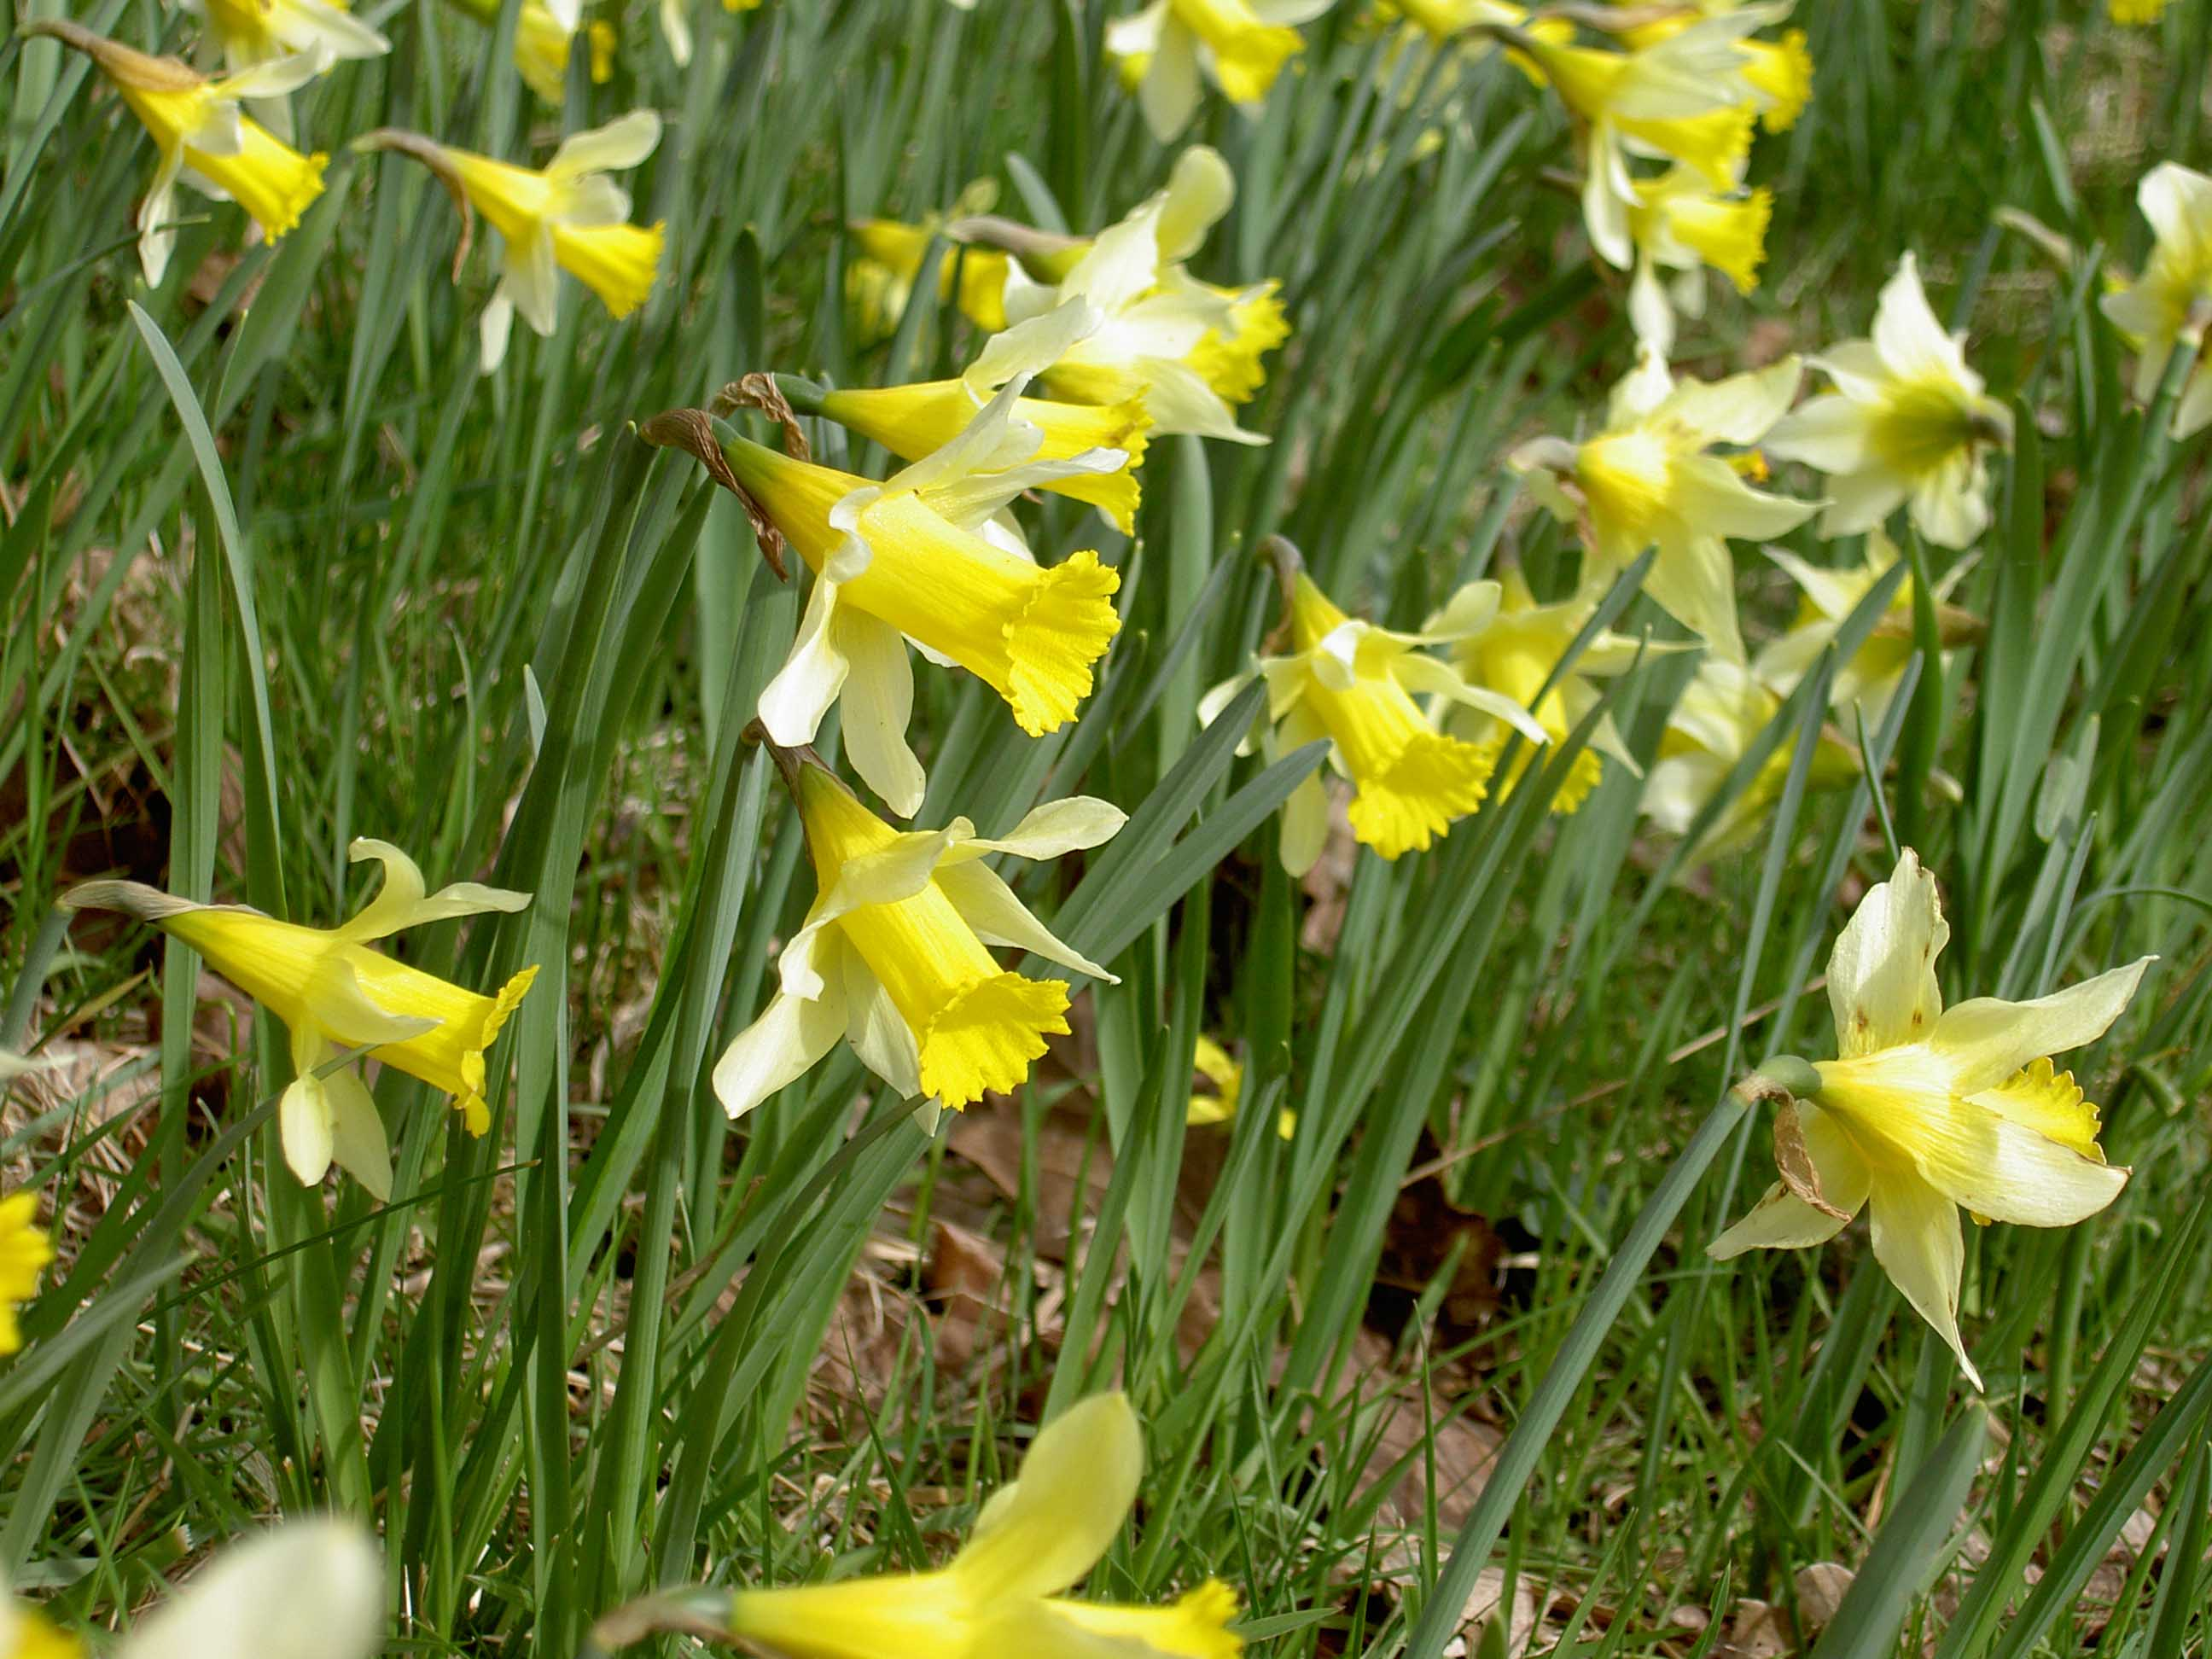 Gloucestershires golden triangle the daffodil society the gloucestershire wildlife trust is the custodian of the native wild daffodils in and around the golden triangle their website has some fascinating izmirmasajfo